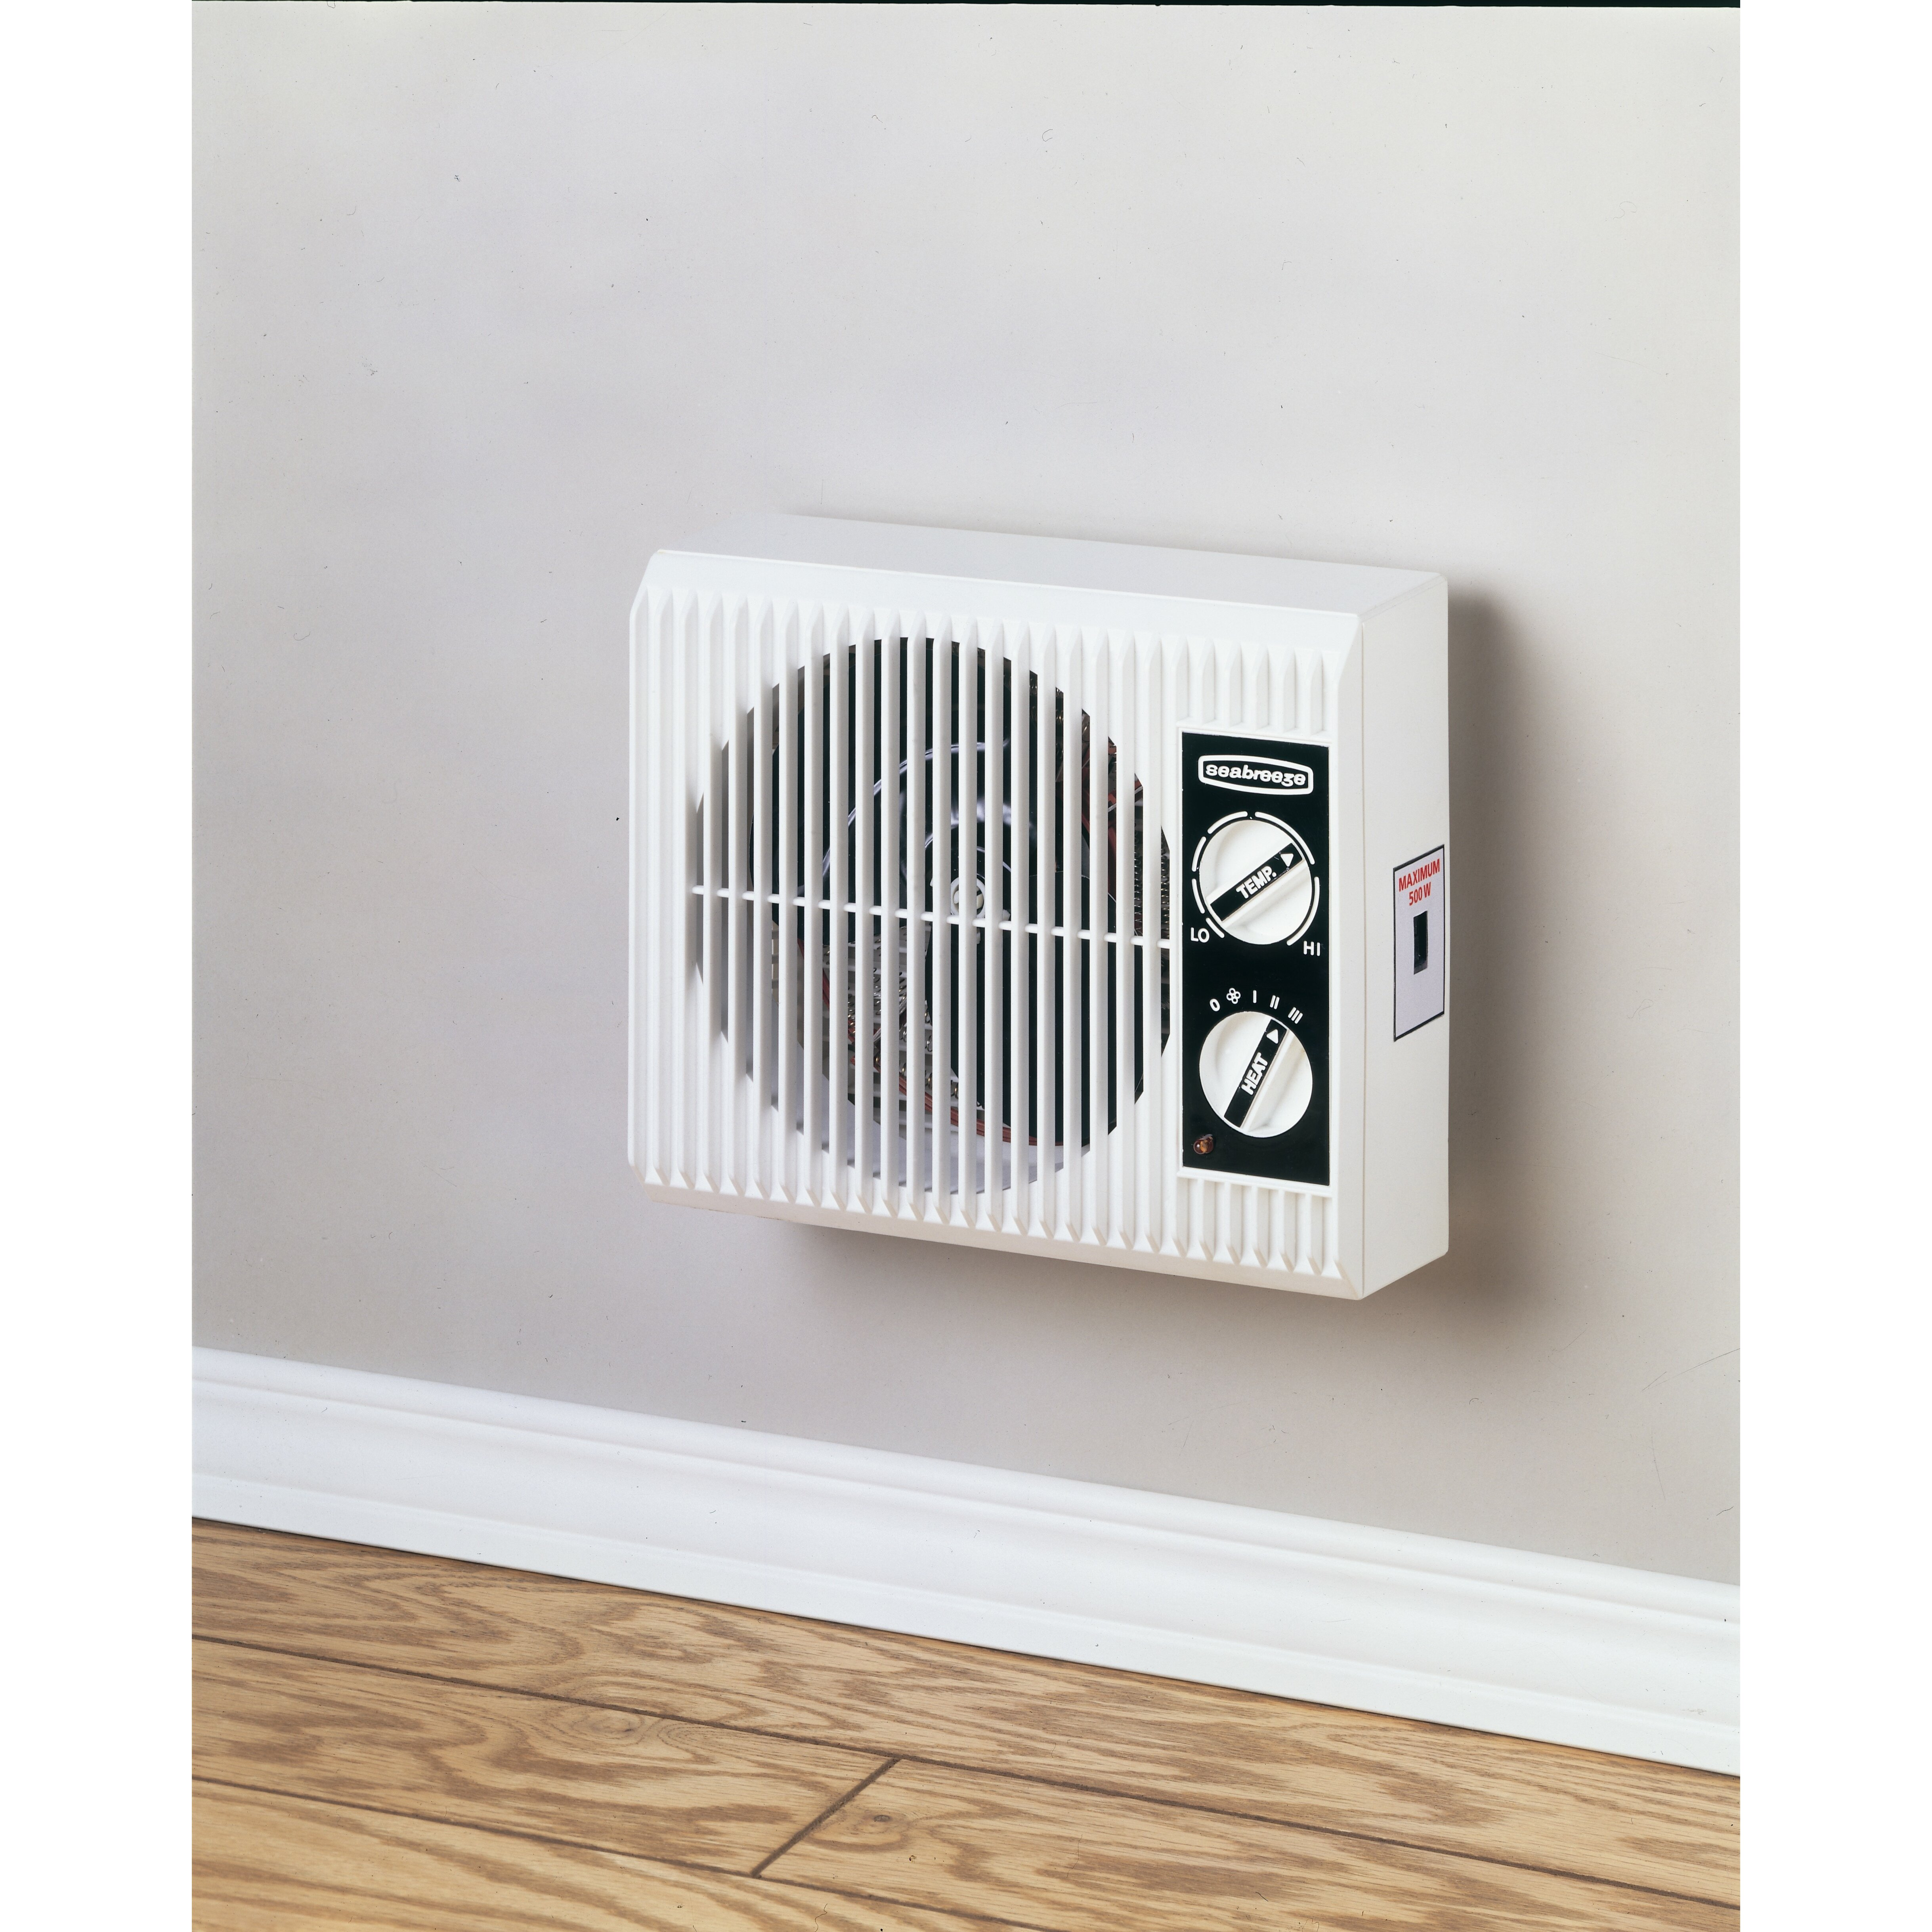 Seabreeze electric off the wall bed bathroom heater reviews wayfair for Electric bathroom wall heaters